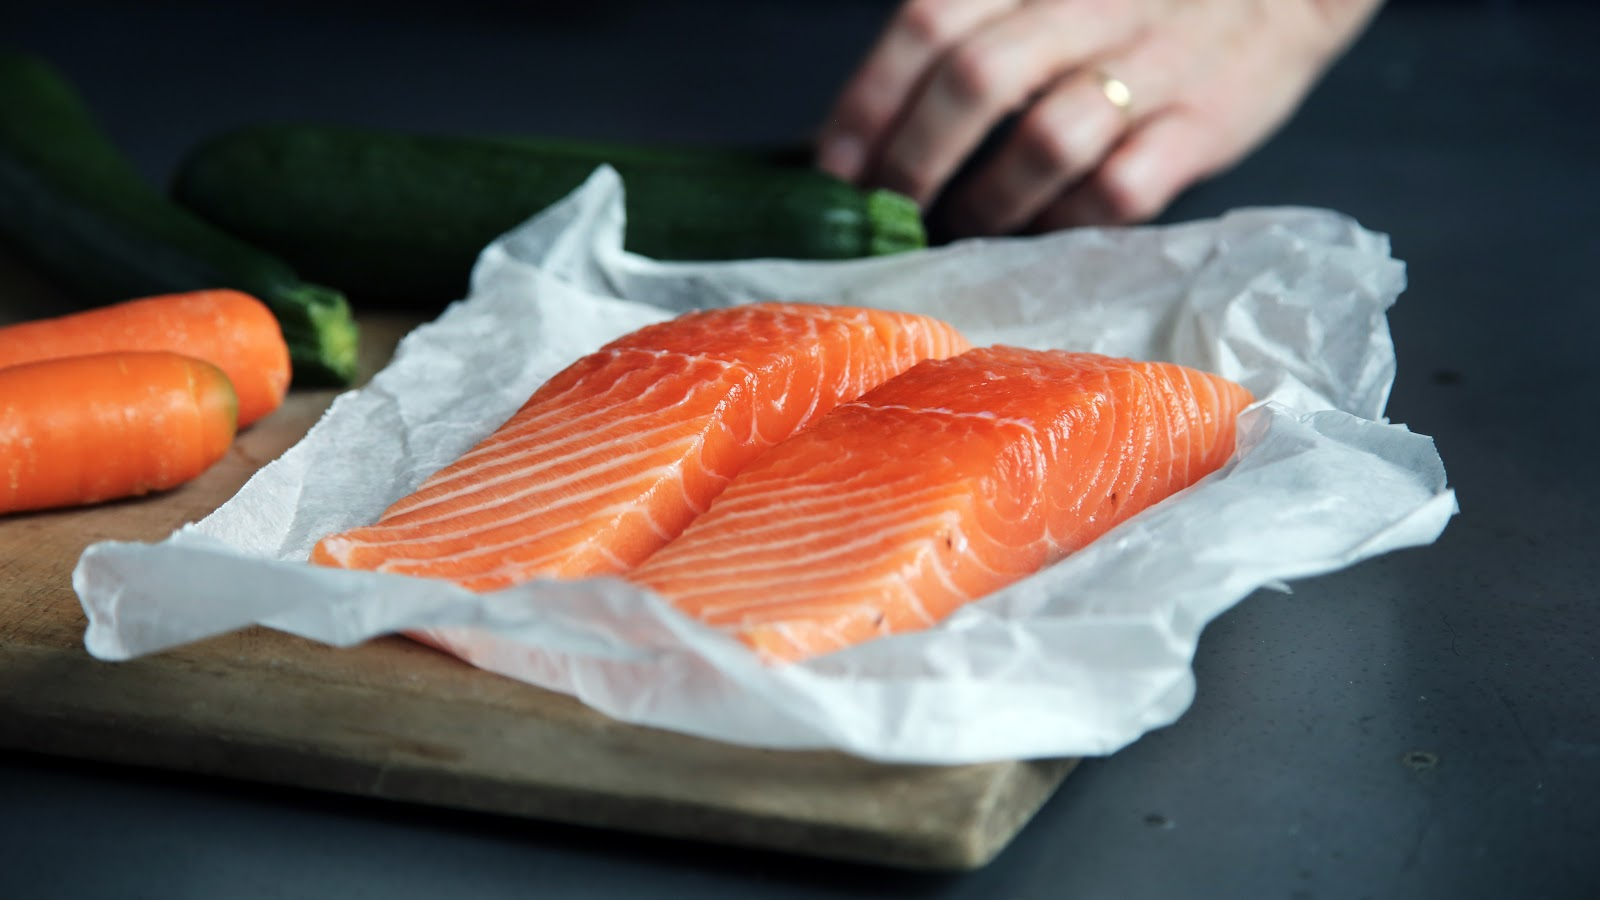 Salmon cut in half sitting on a cutting board next to vegetables.